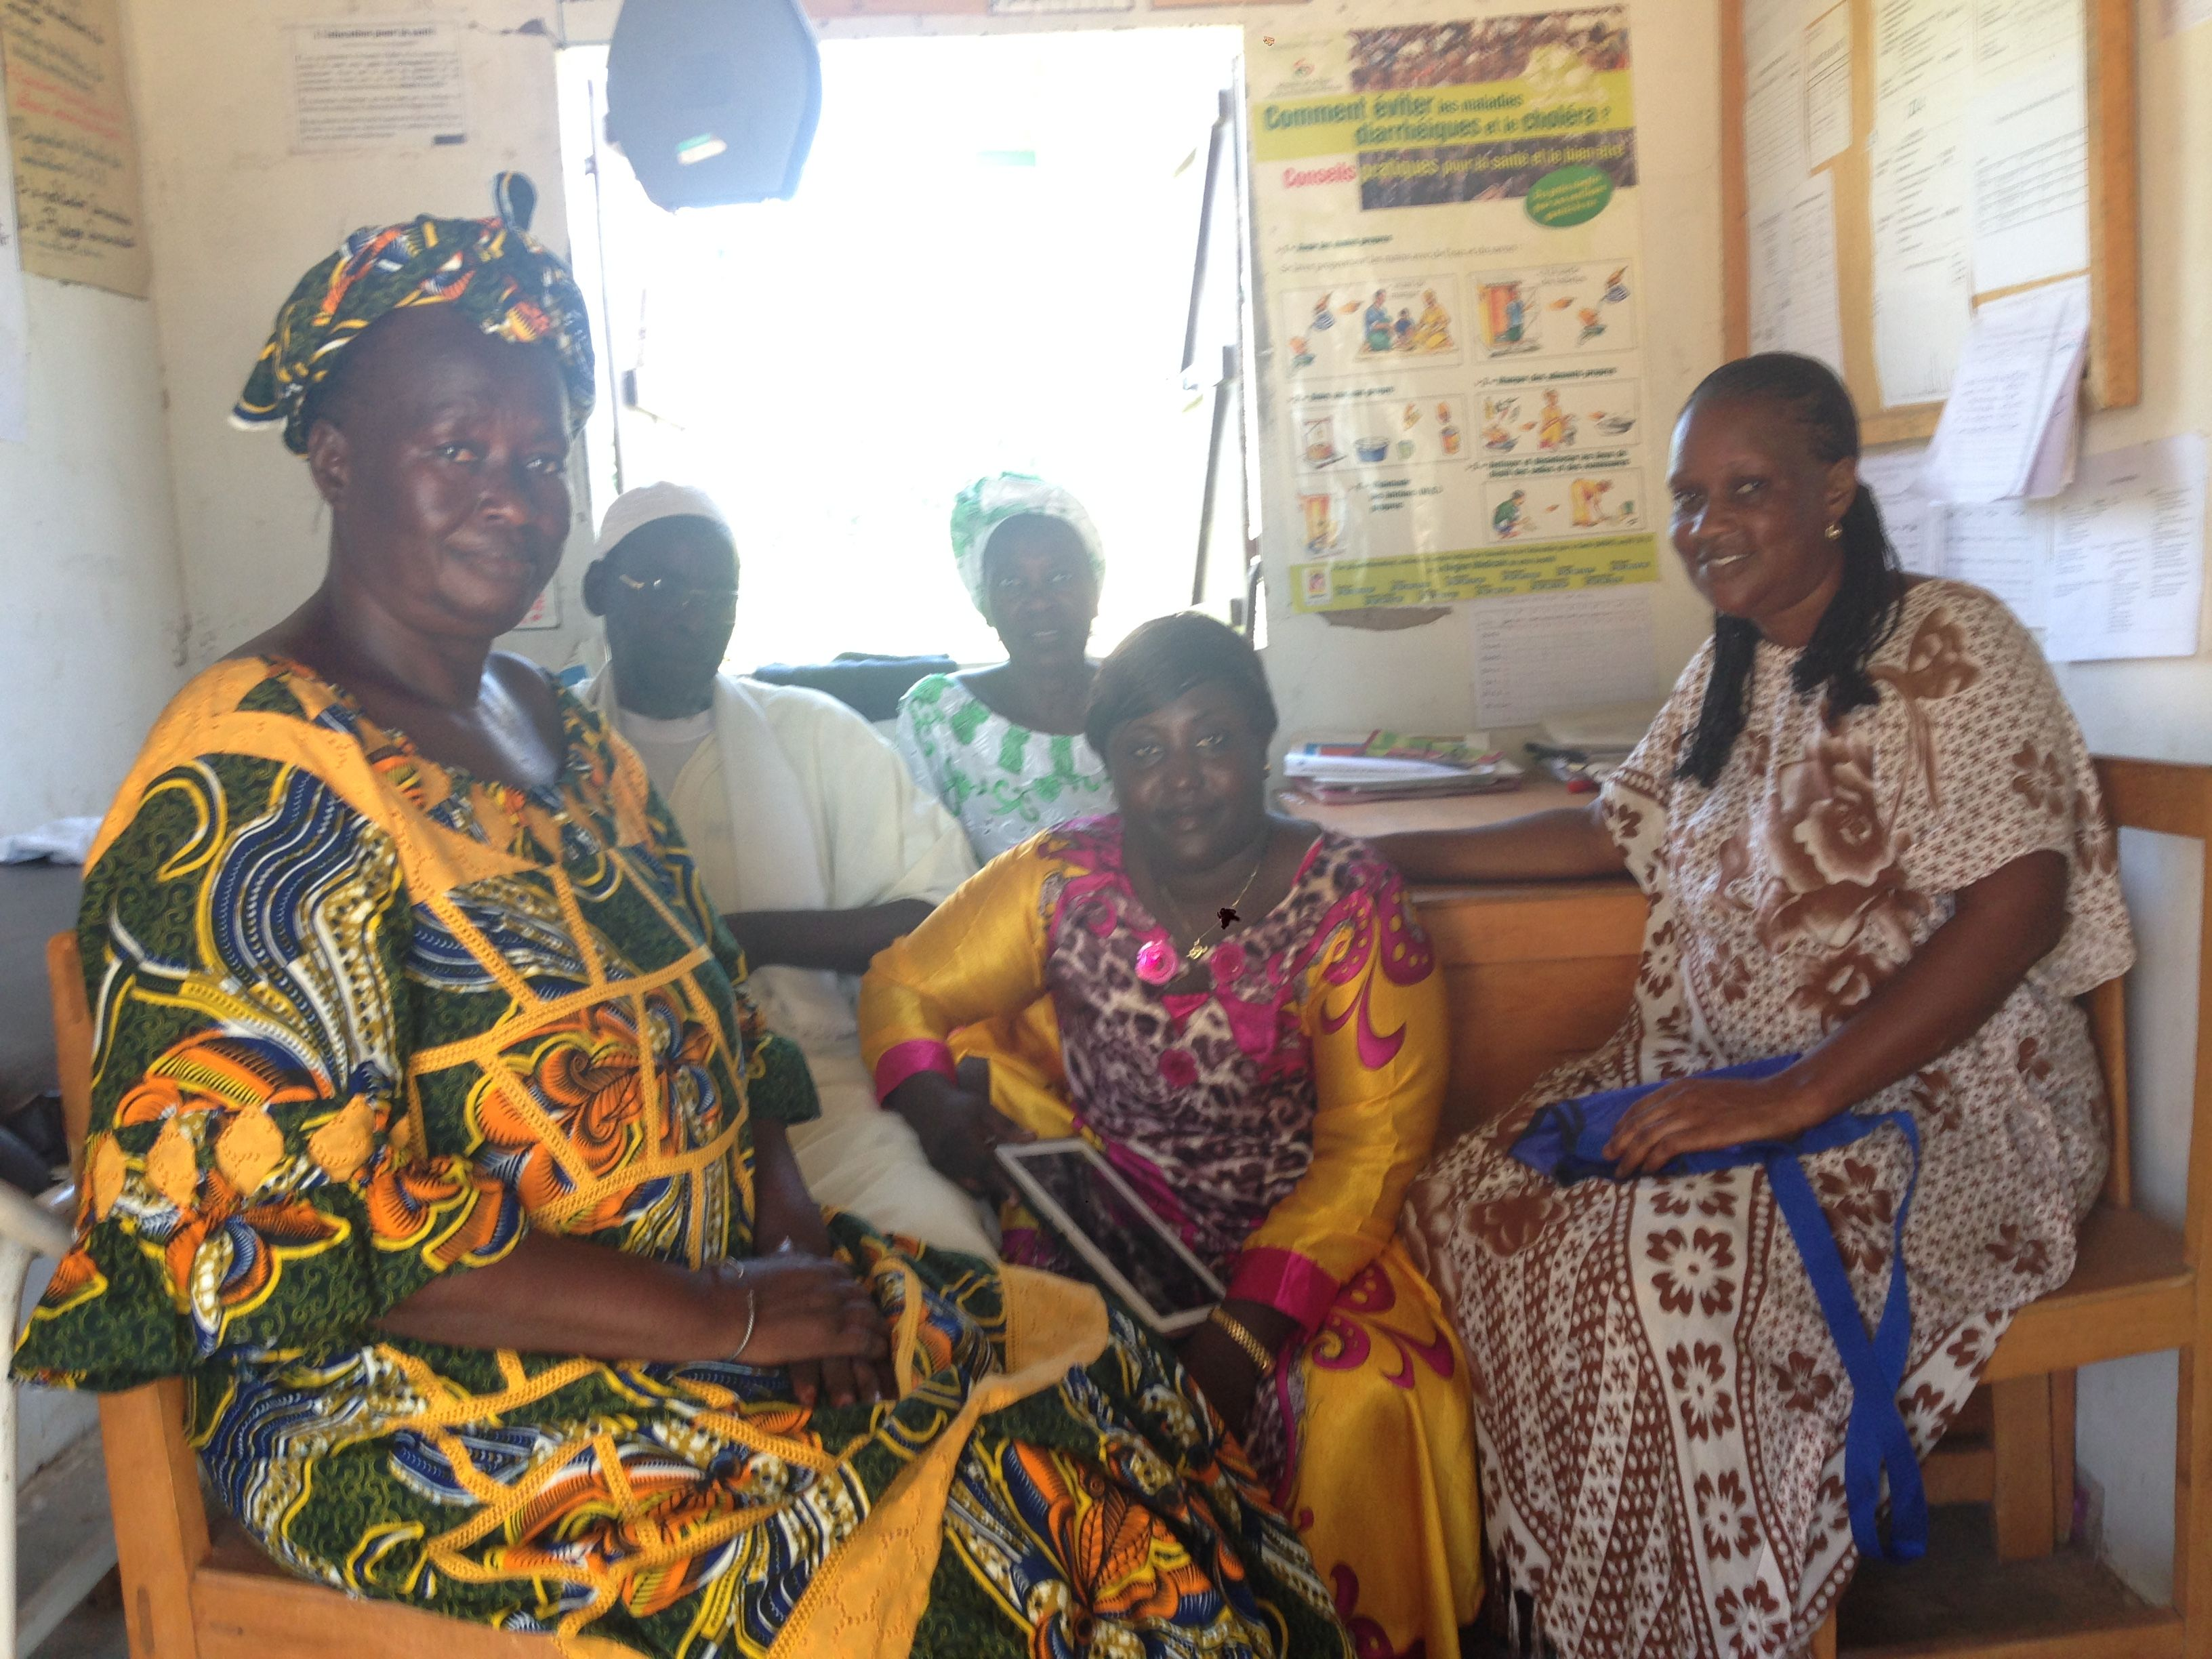 A community-run health dispensary comes back to life in Senegal   Tostan